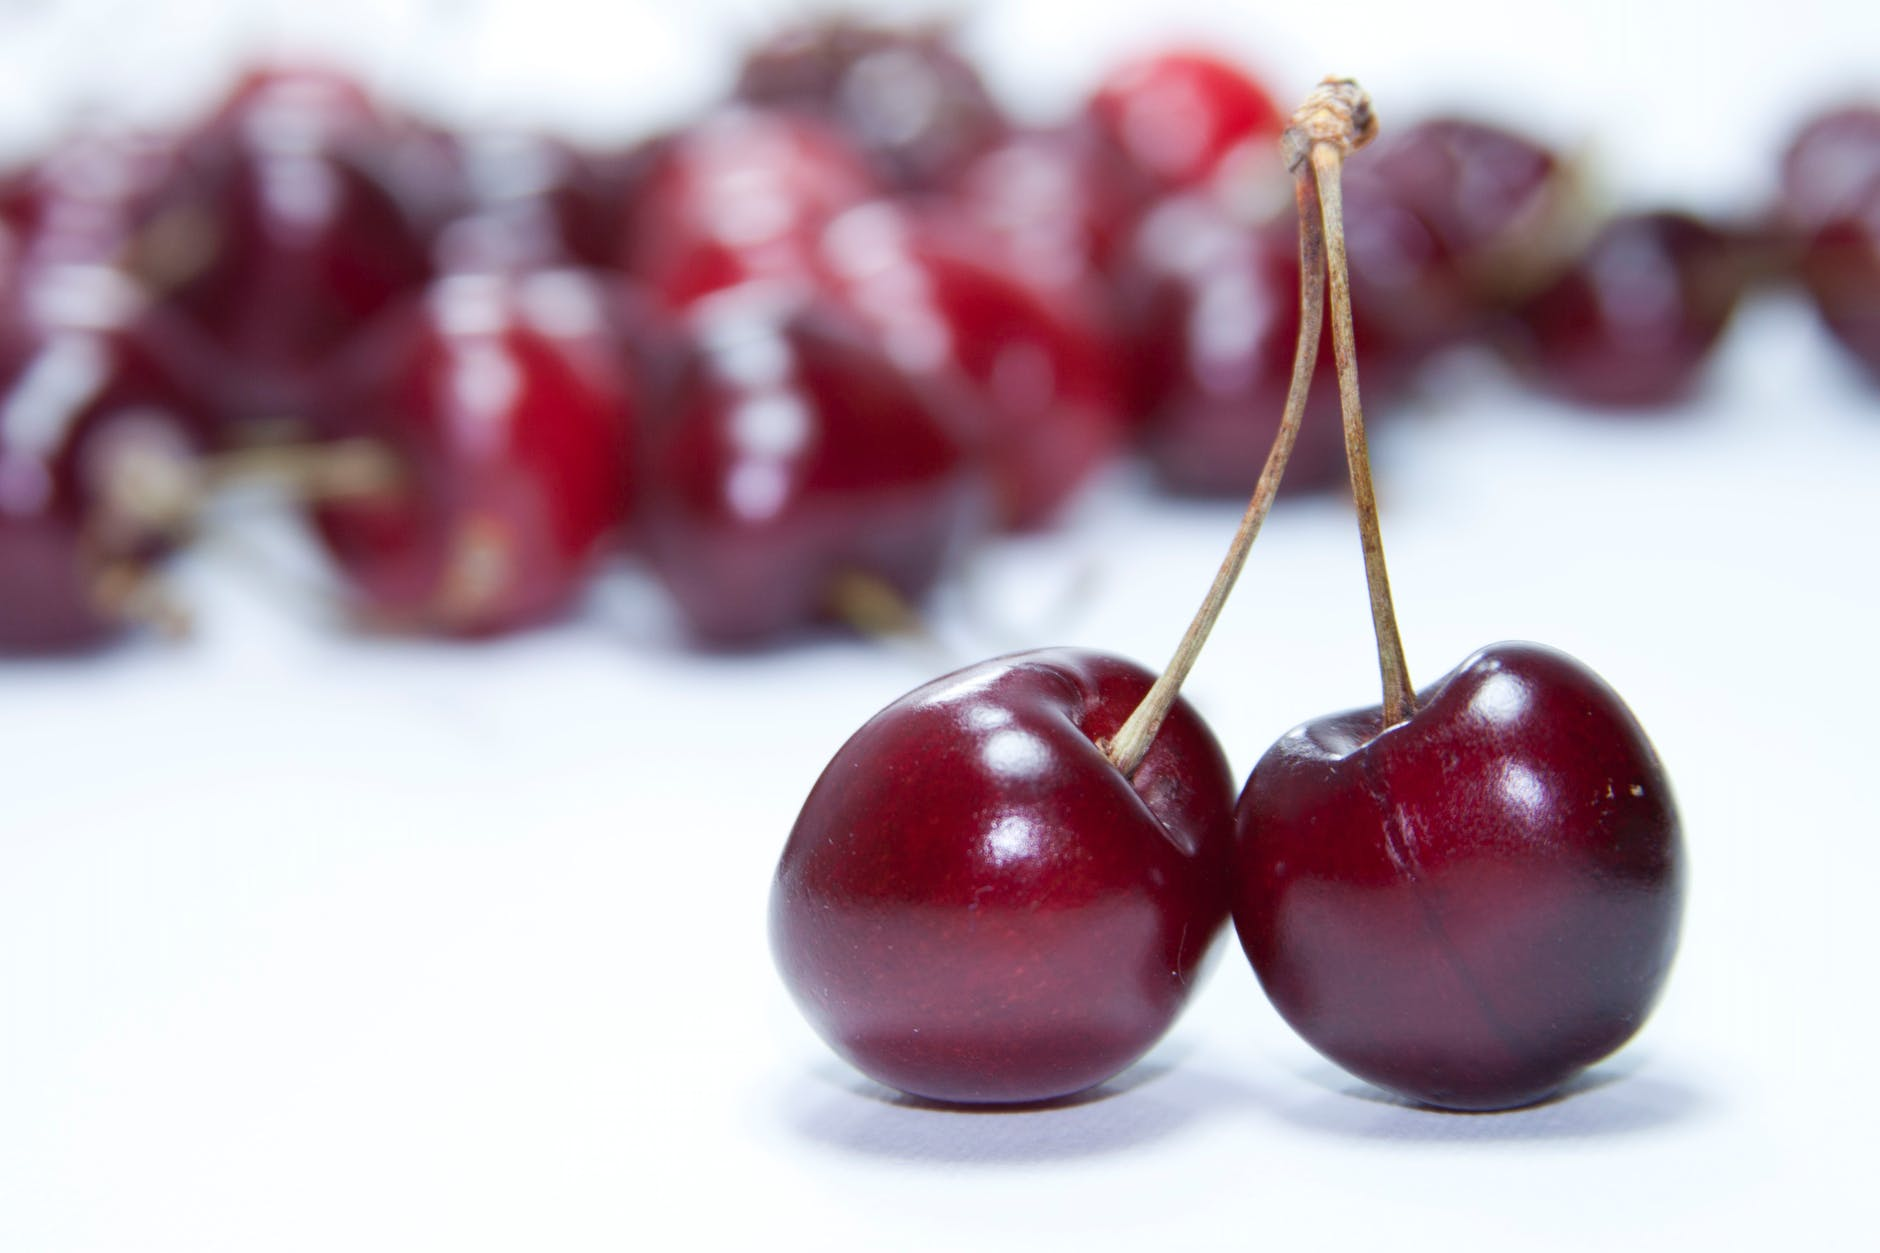 Cherries for Antioxidant, to Reduce Belly Fat